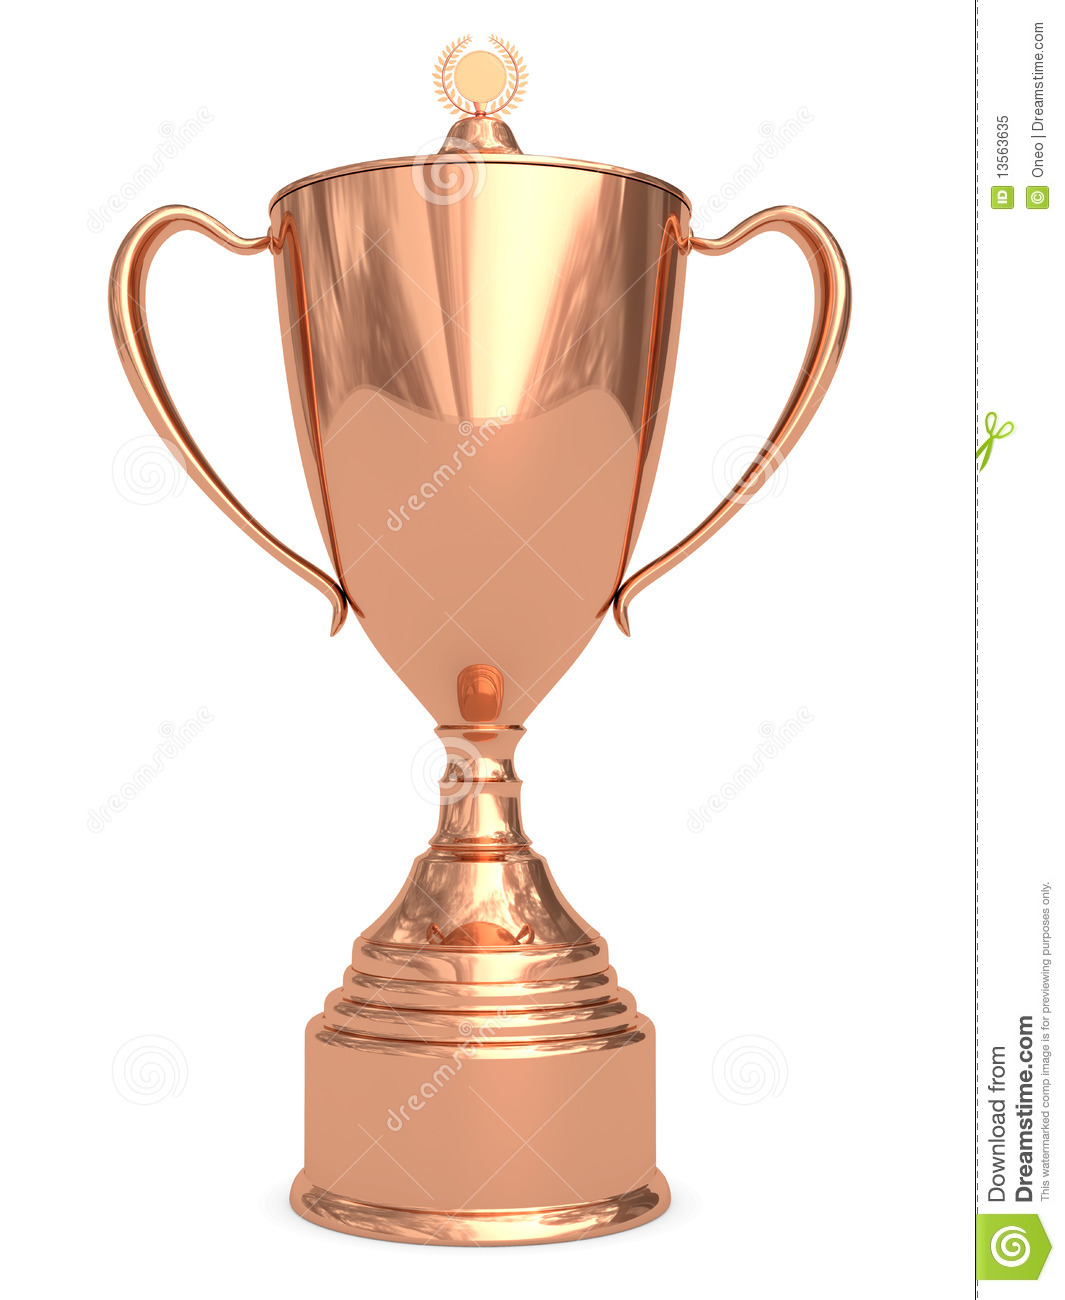 Bronze Trophy Cup On White Royalty Free Stock Photo - Image: 13563635: dreamstime.com/royalty-free-stock-photo-bronze-trophy-cup-white...